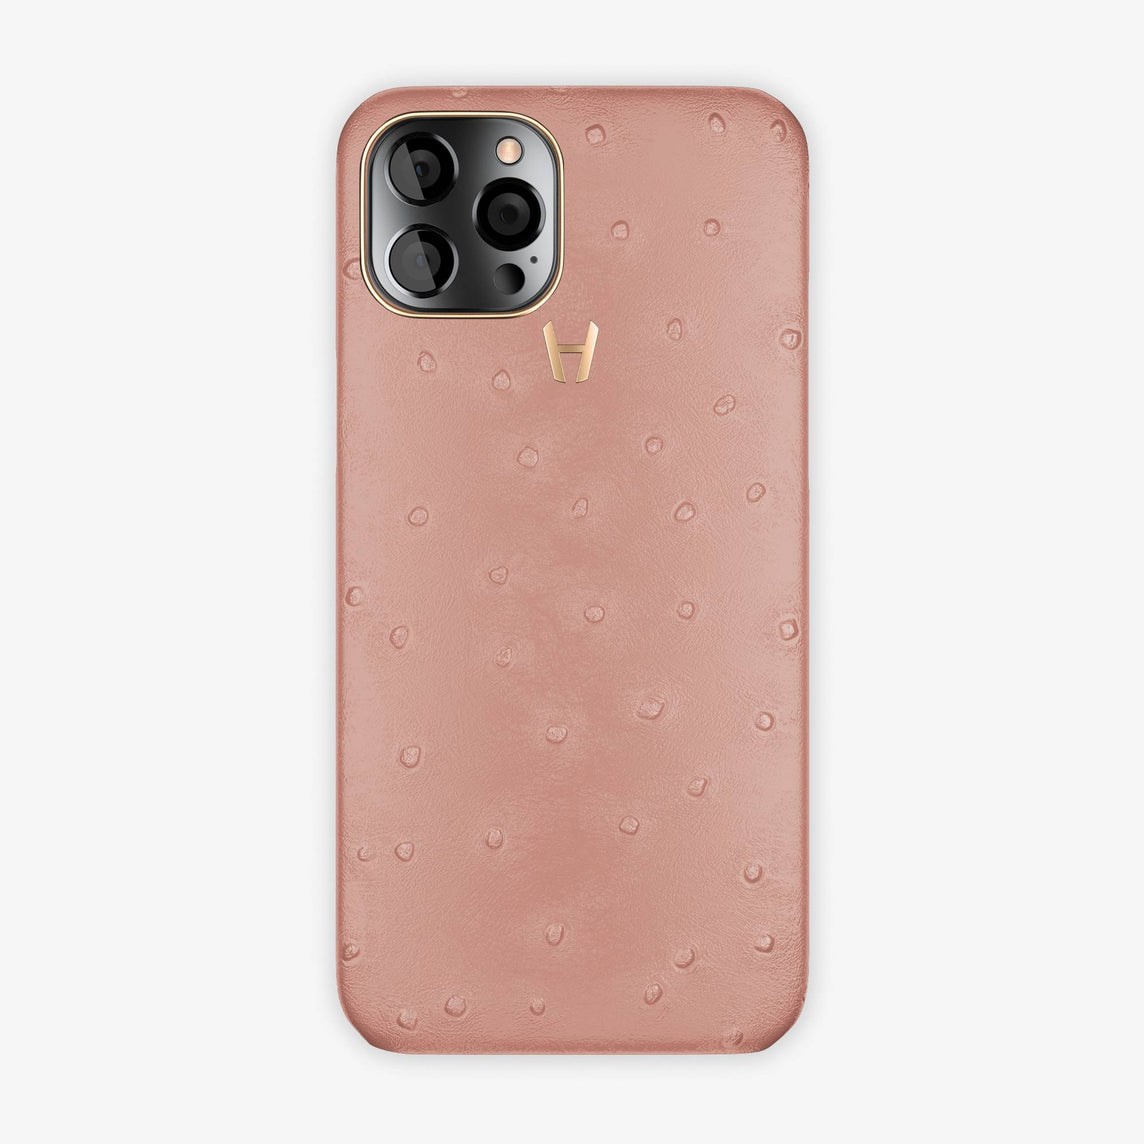 Ostrich Case iPhone 12 Pro Max | Pink - Rose Gold